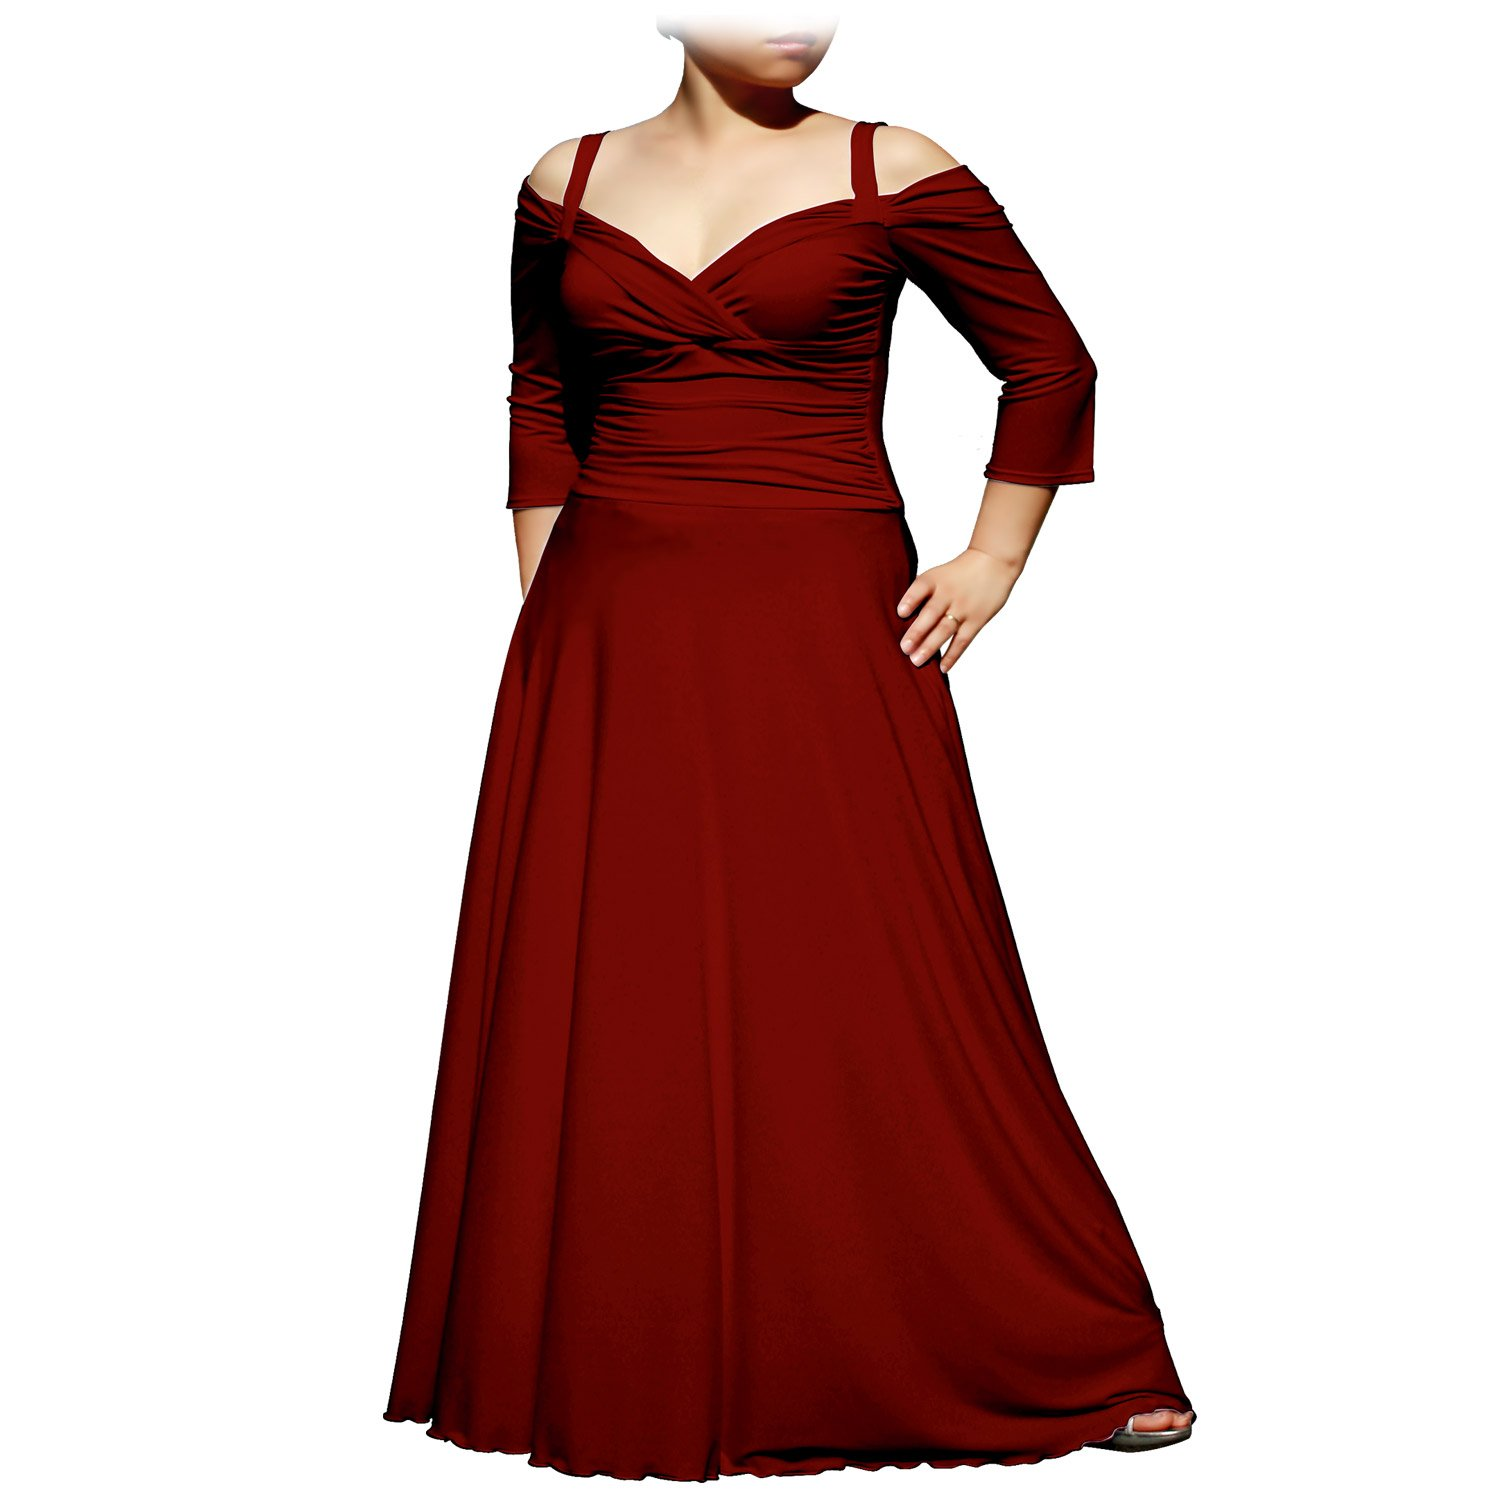 EVANESE Women's Plus Size Elegant Long Formal Evening Dress with 3/4 Sleeves D86635